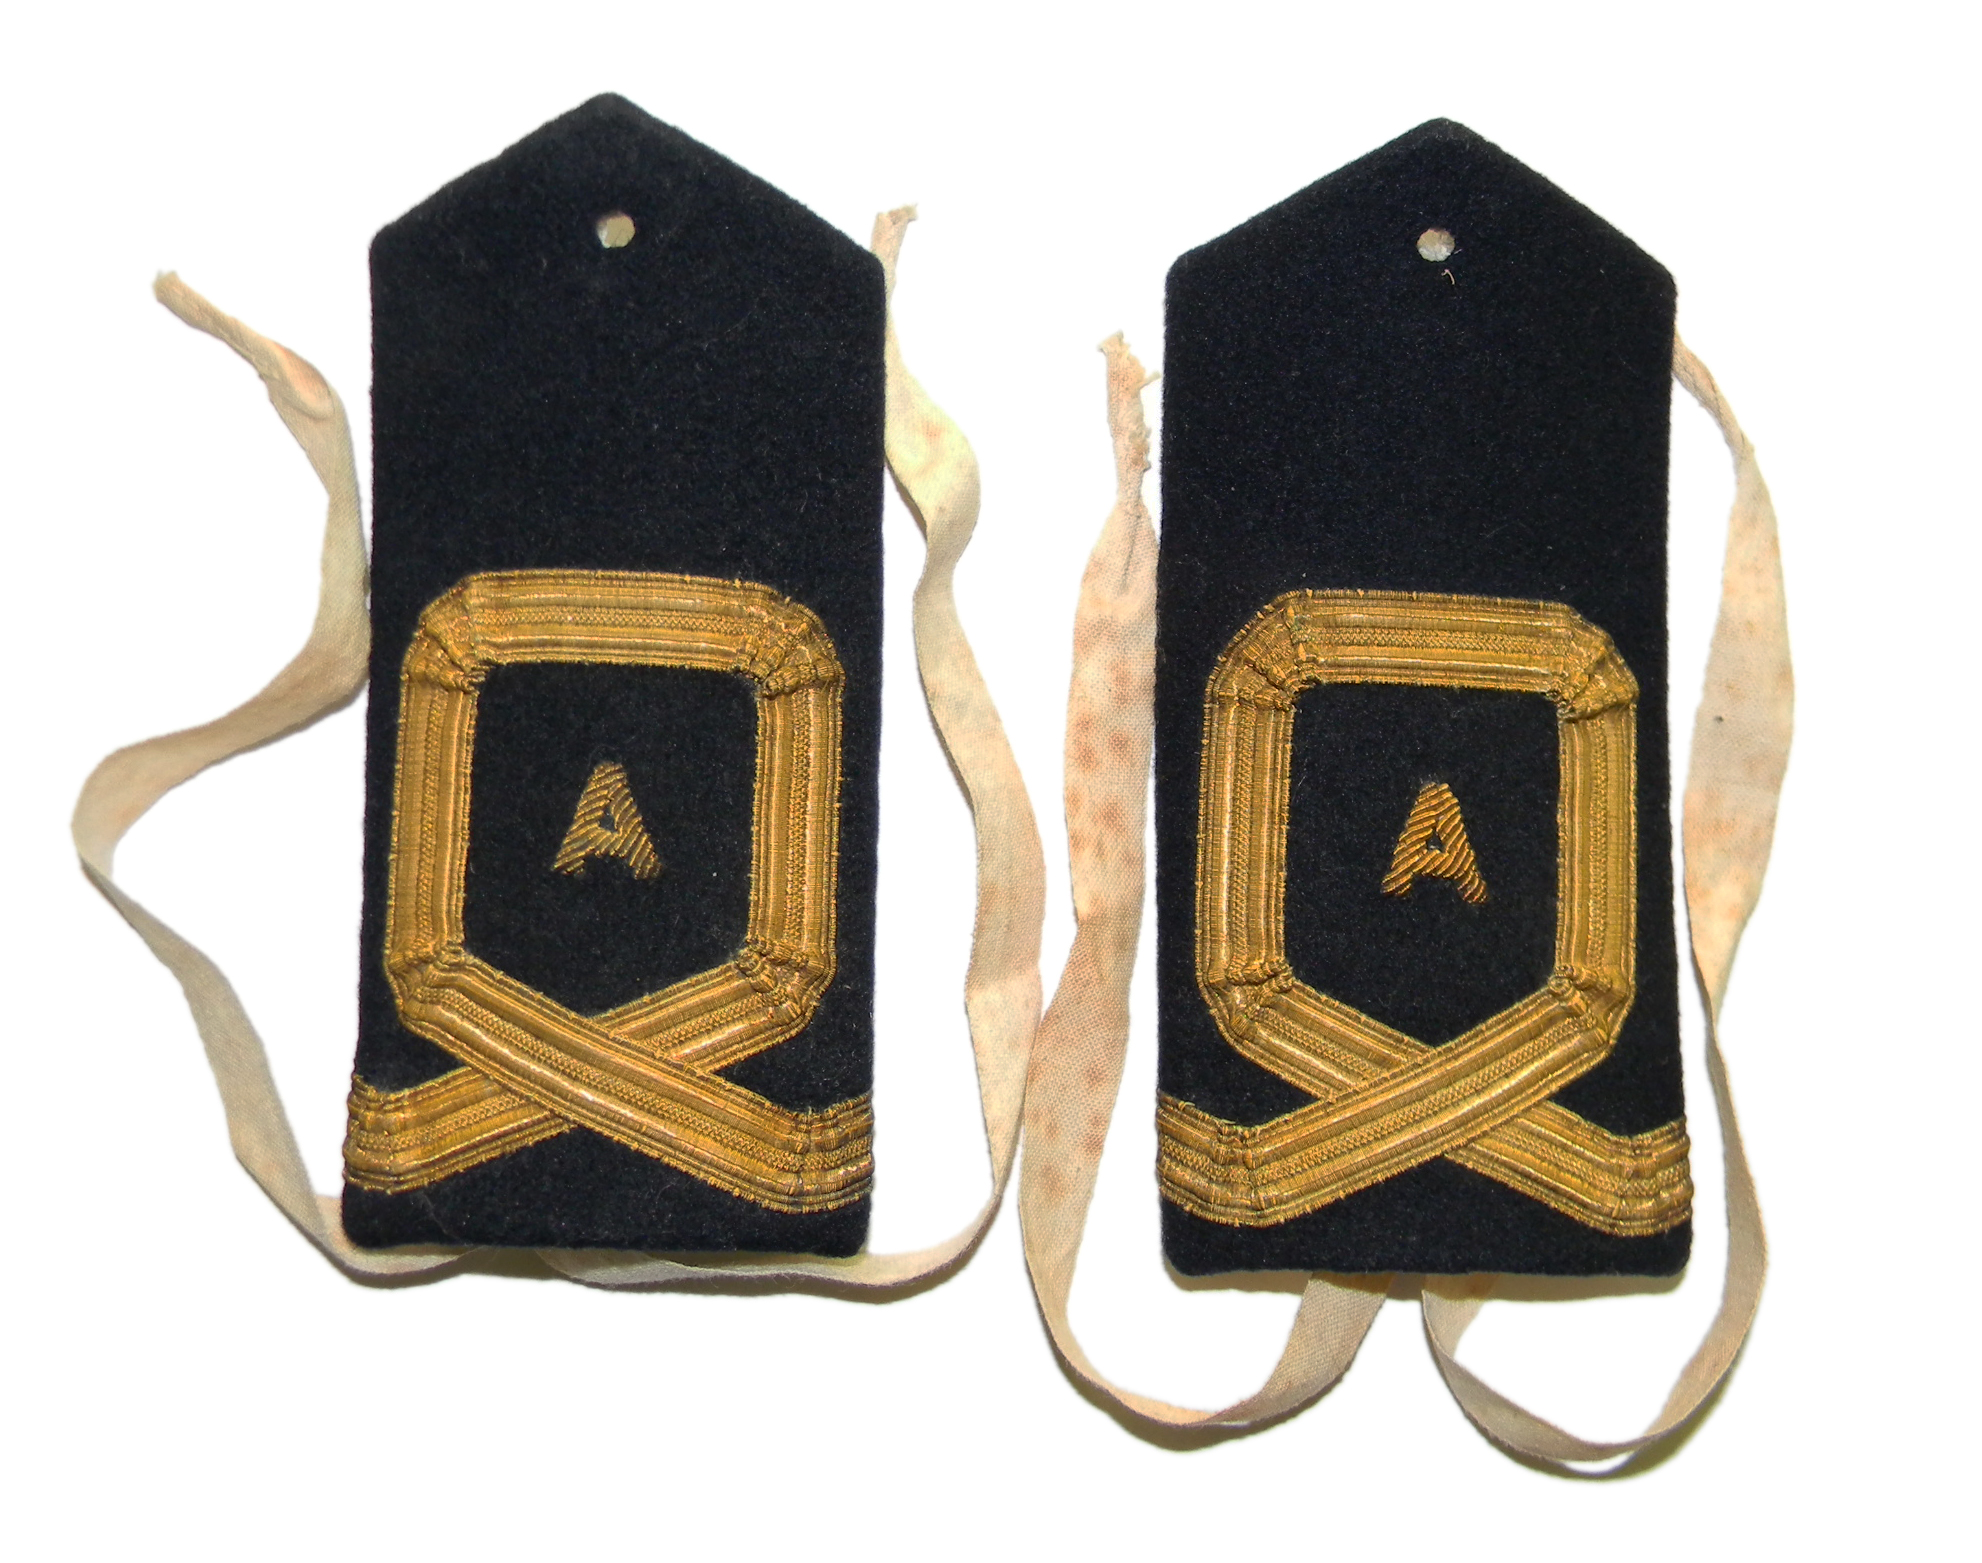 WWII RNVR (A) shoulder boards